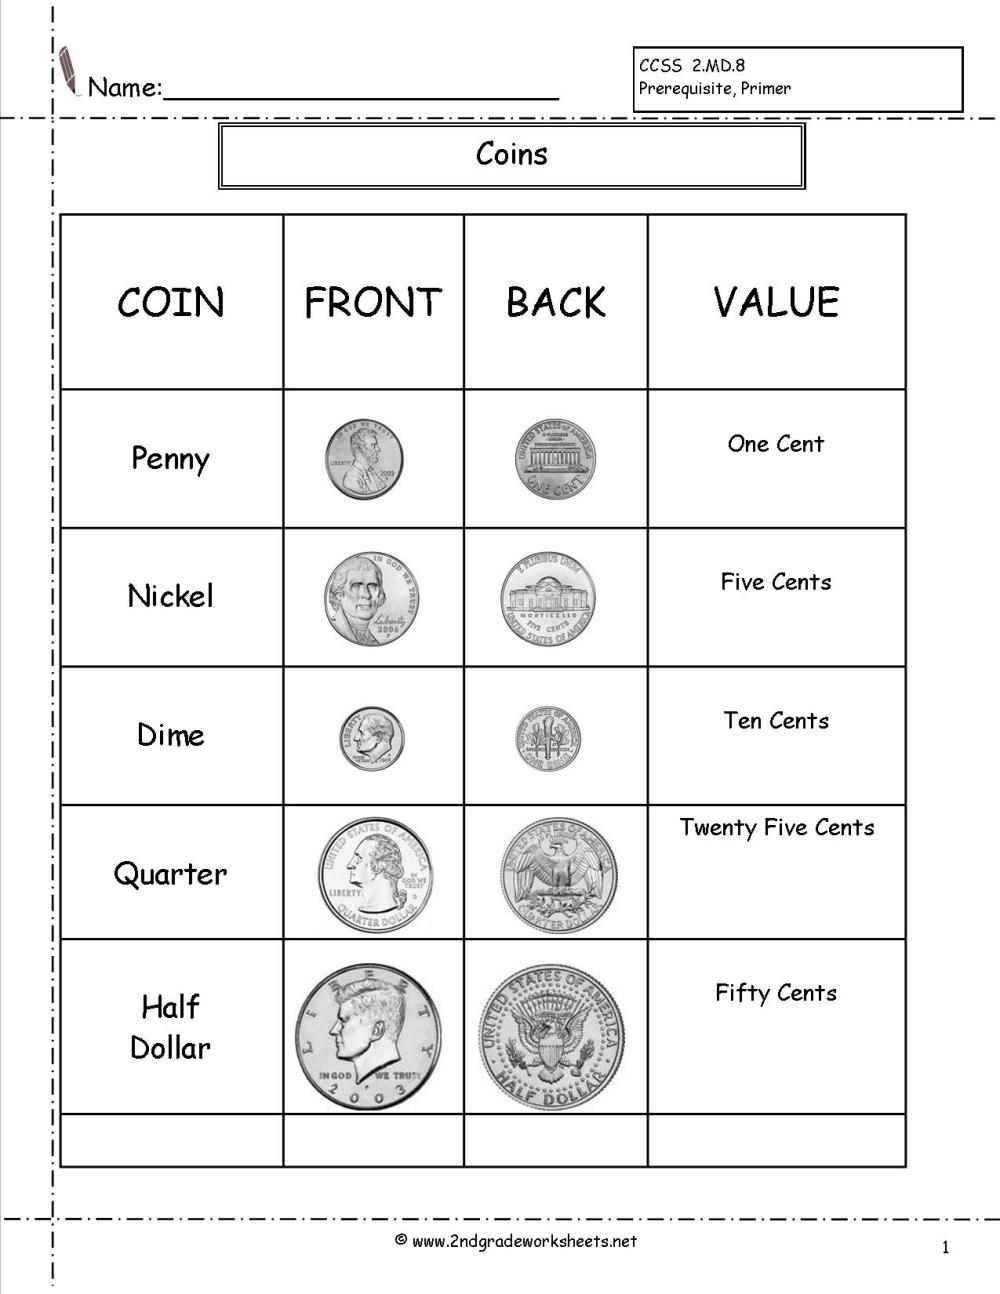 medium resolution of Do It Now Money Counting Worksheets 2nd Grade   Printable Worksheets and  Activities for Teachers